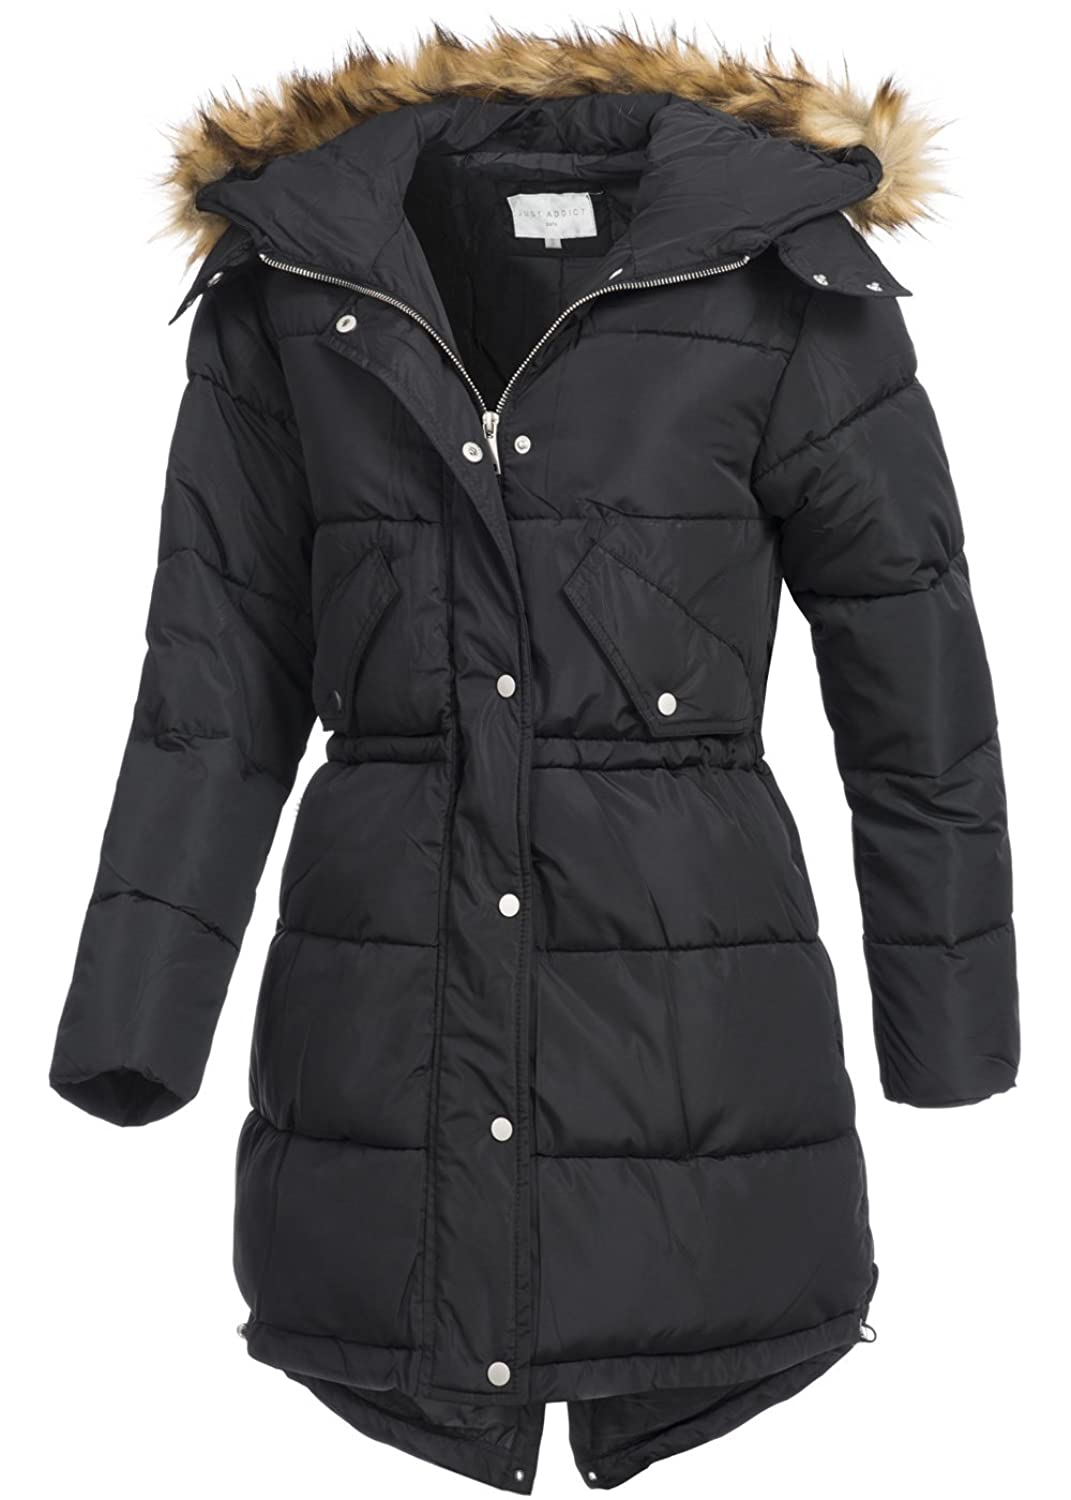 in vogue Damen Wintermantel IV095, warmer Fishtail-Parka mit Kapuze & Webpelz, schwarz